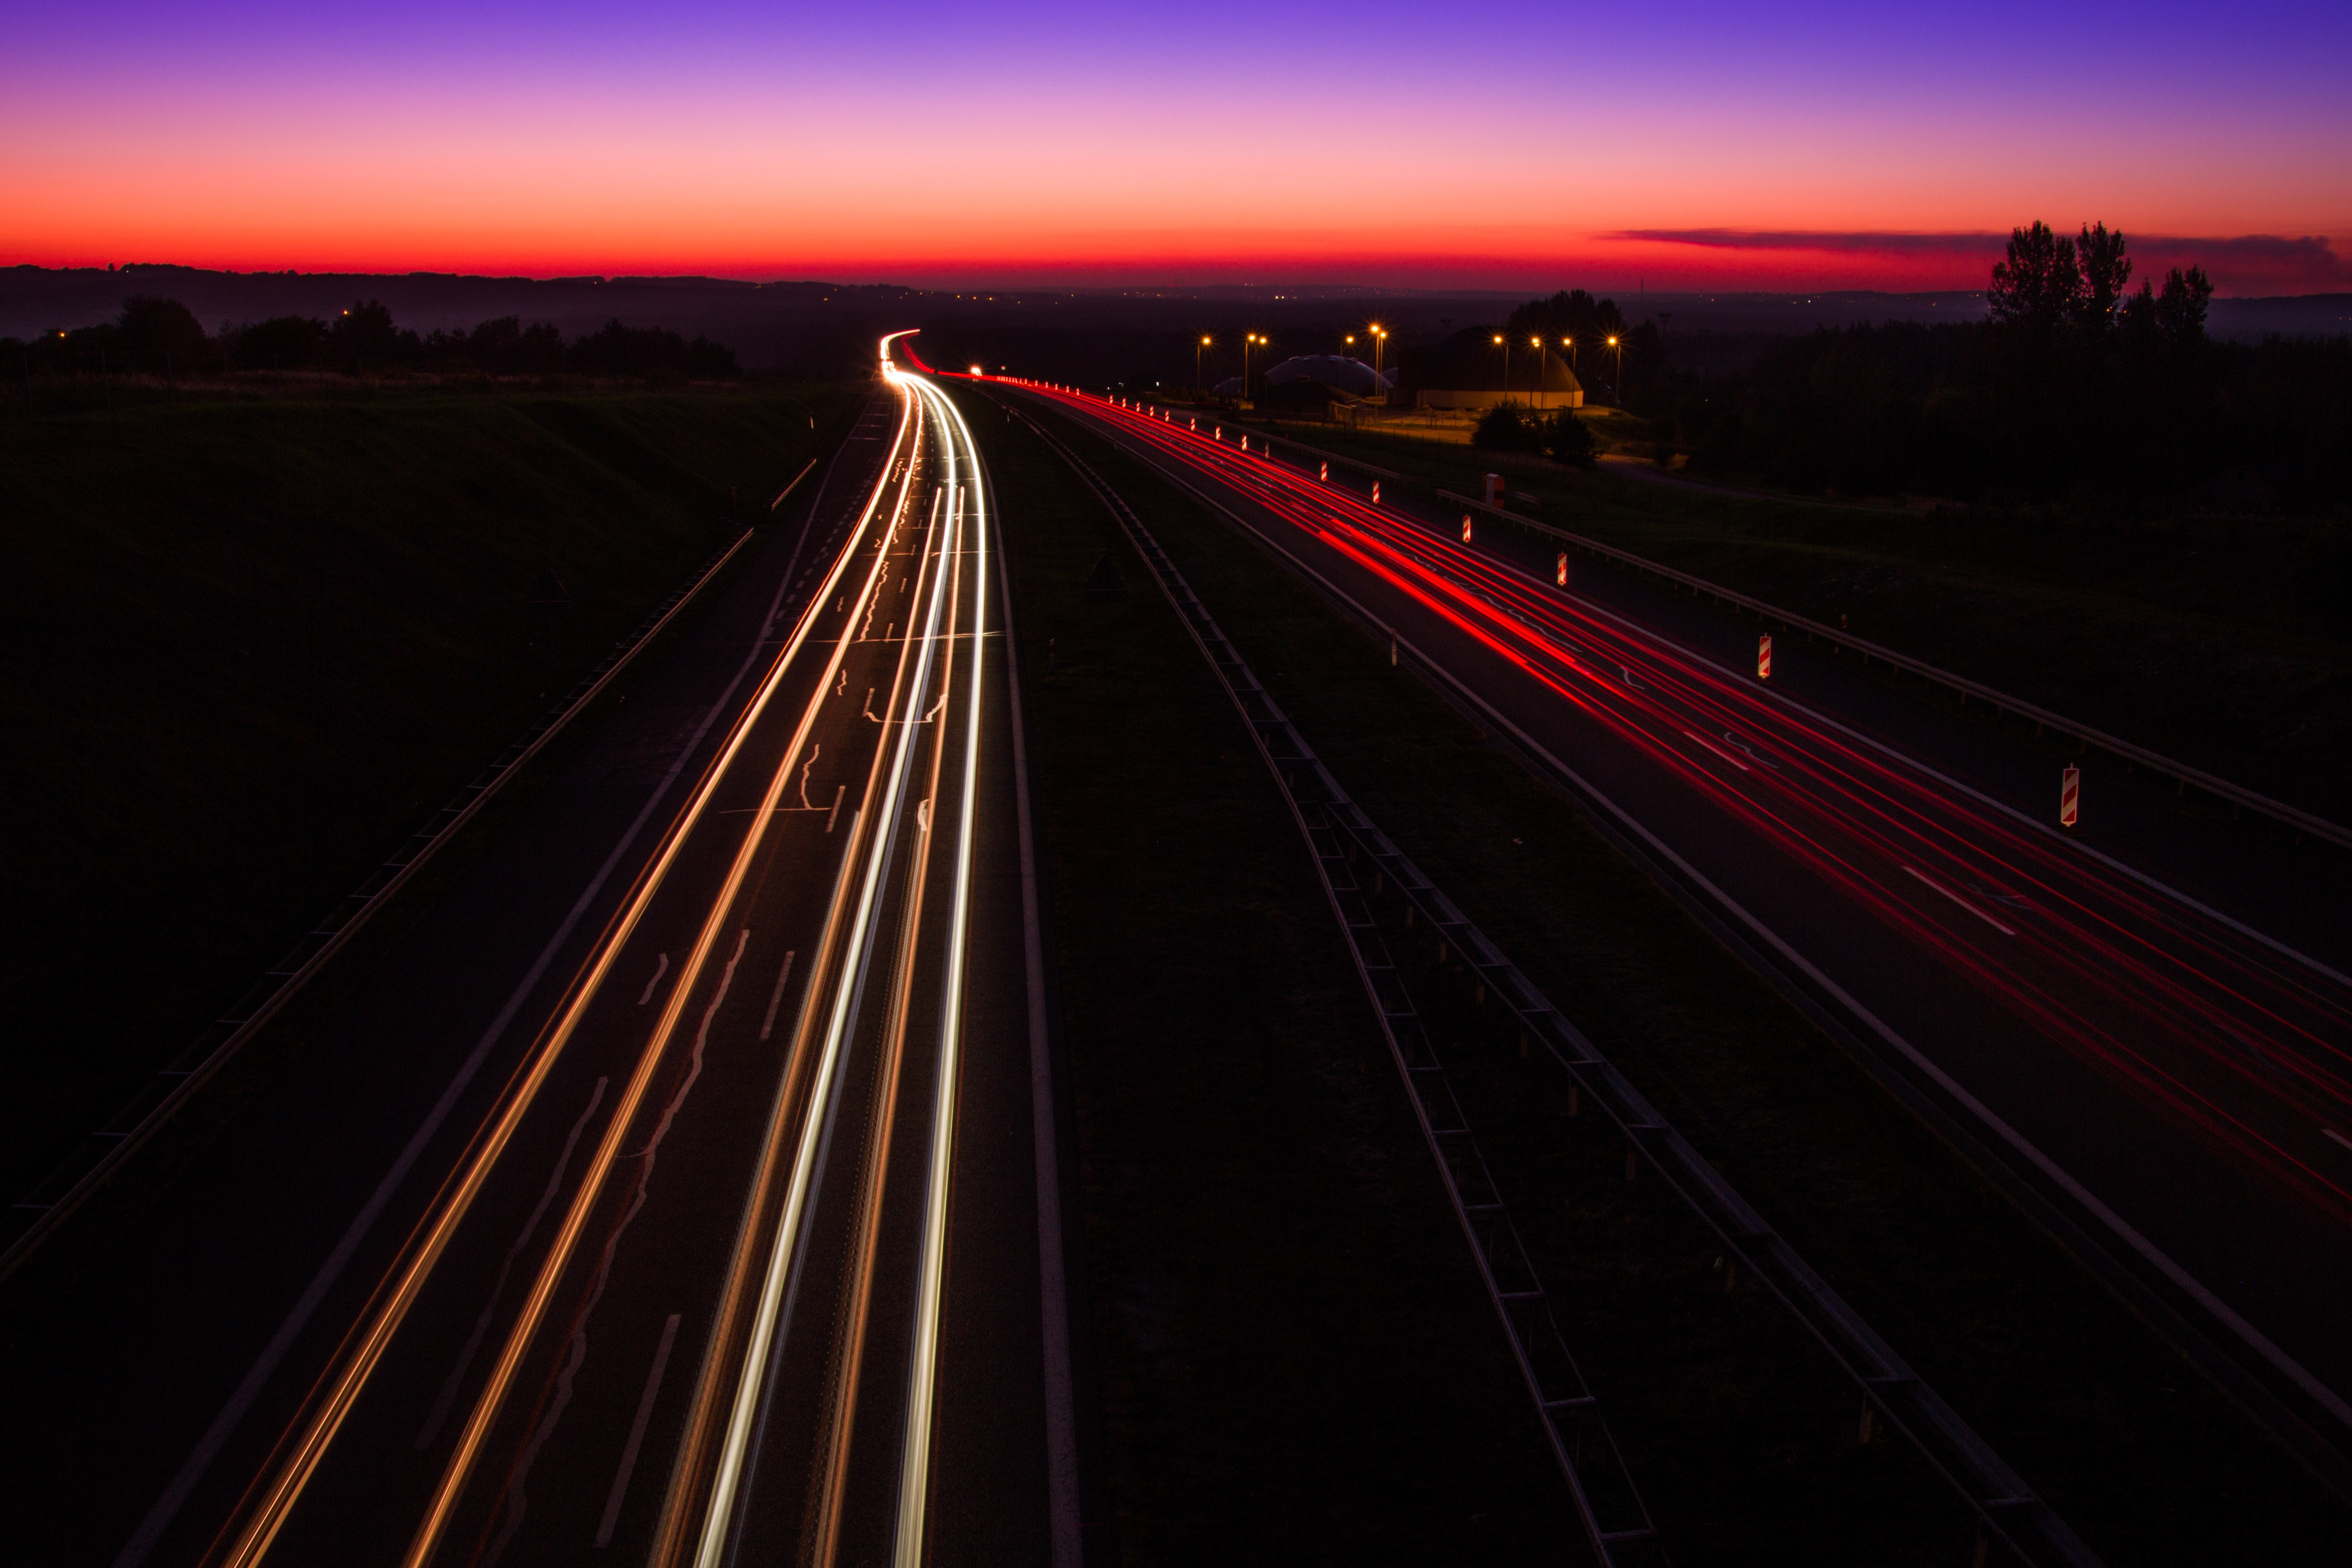 Highway Sunset, light trails, Poland, A4, Landscapes, Traffic, Sunset, HQ Photo